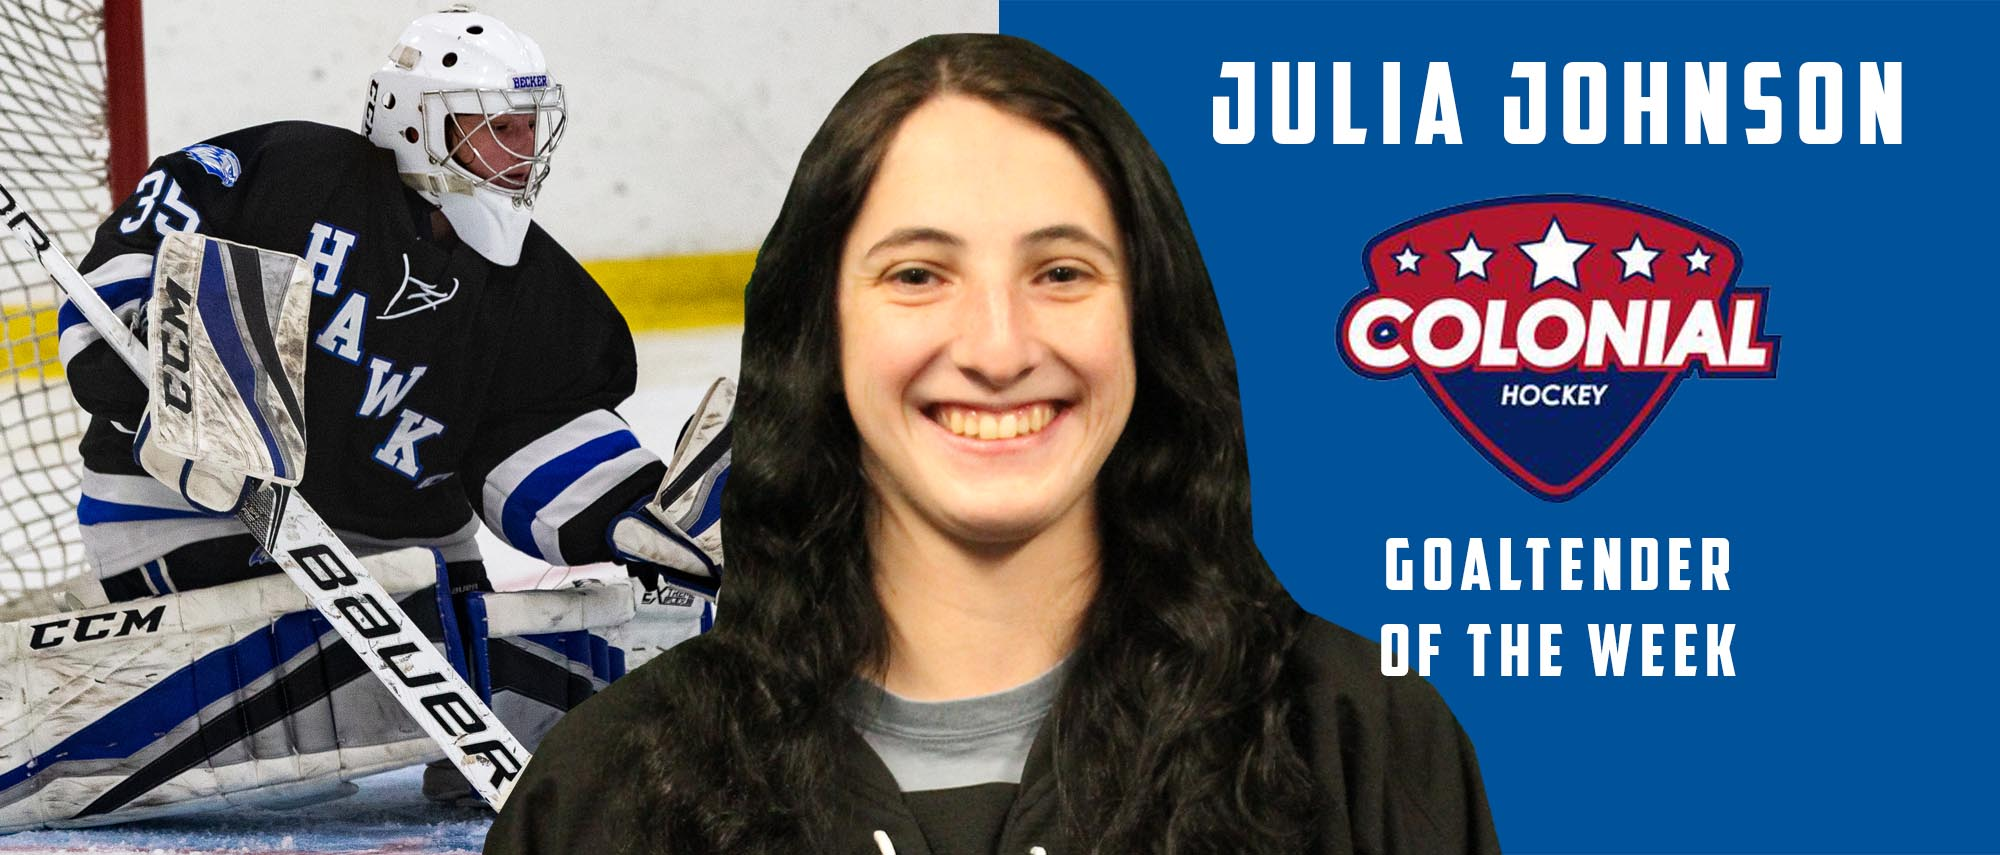 Julia Johnson, Colonial Hockey Conference Goaltender of the Week (Jan. 21, 2019)